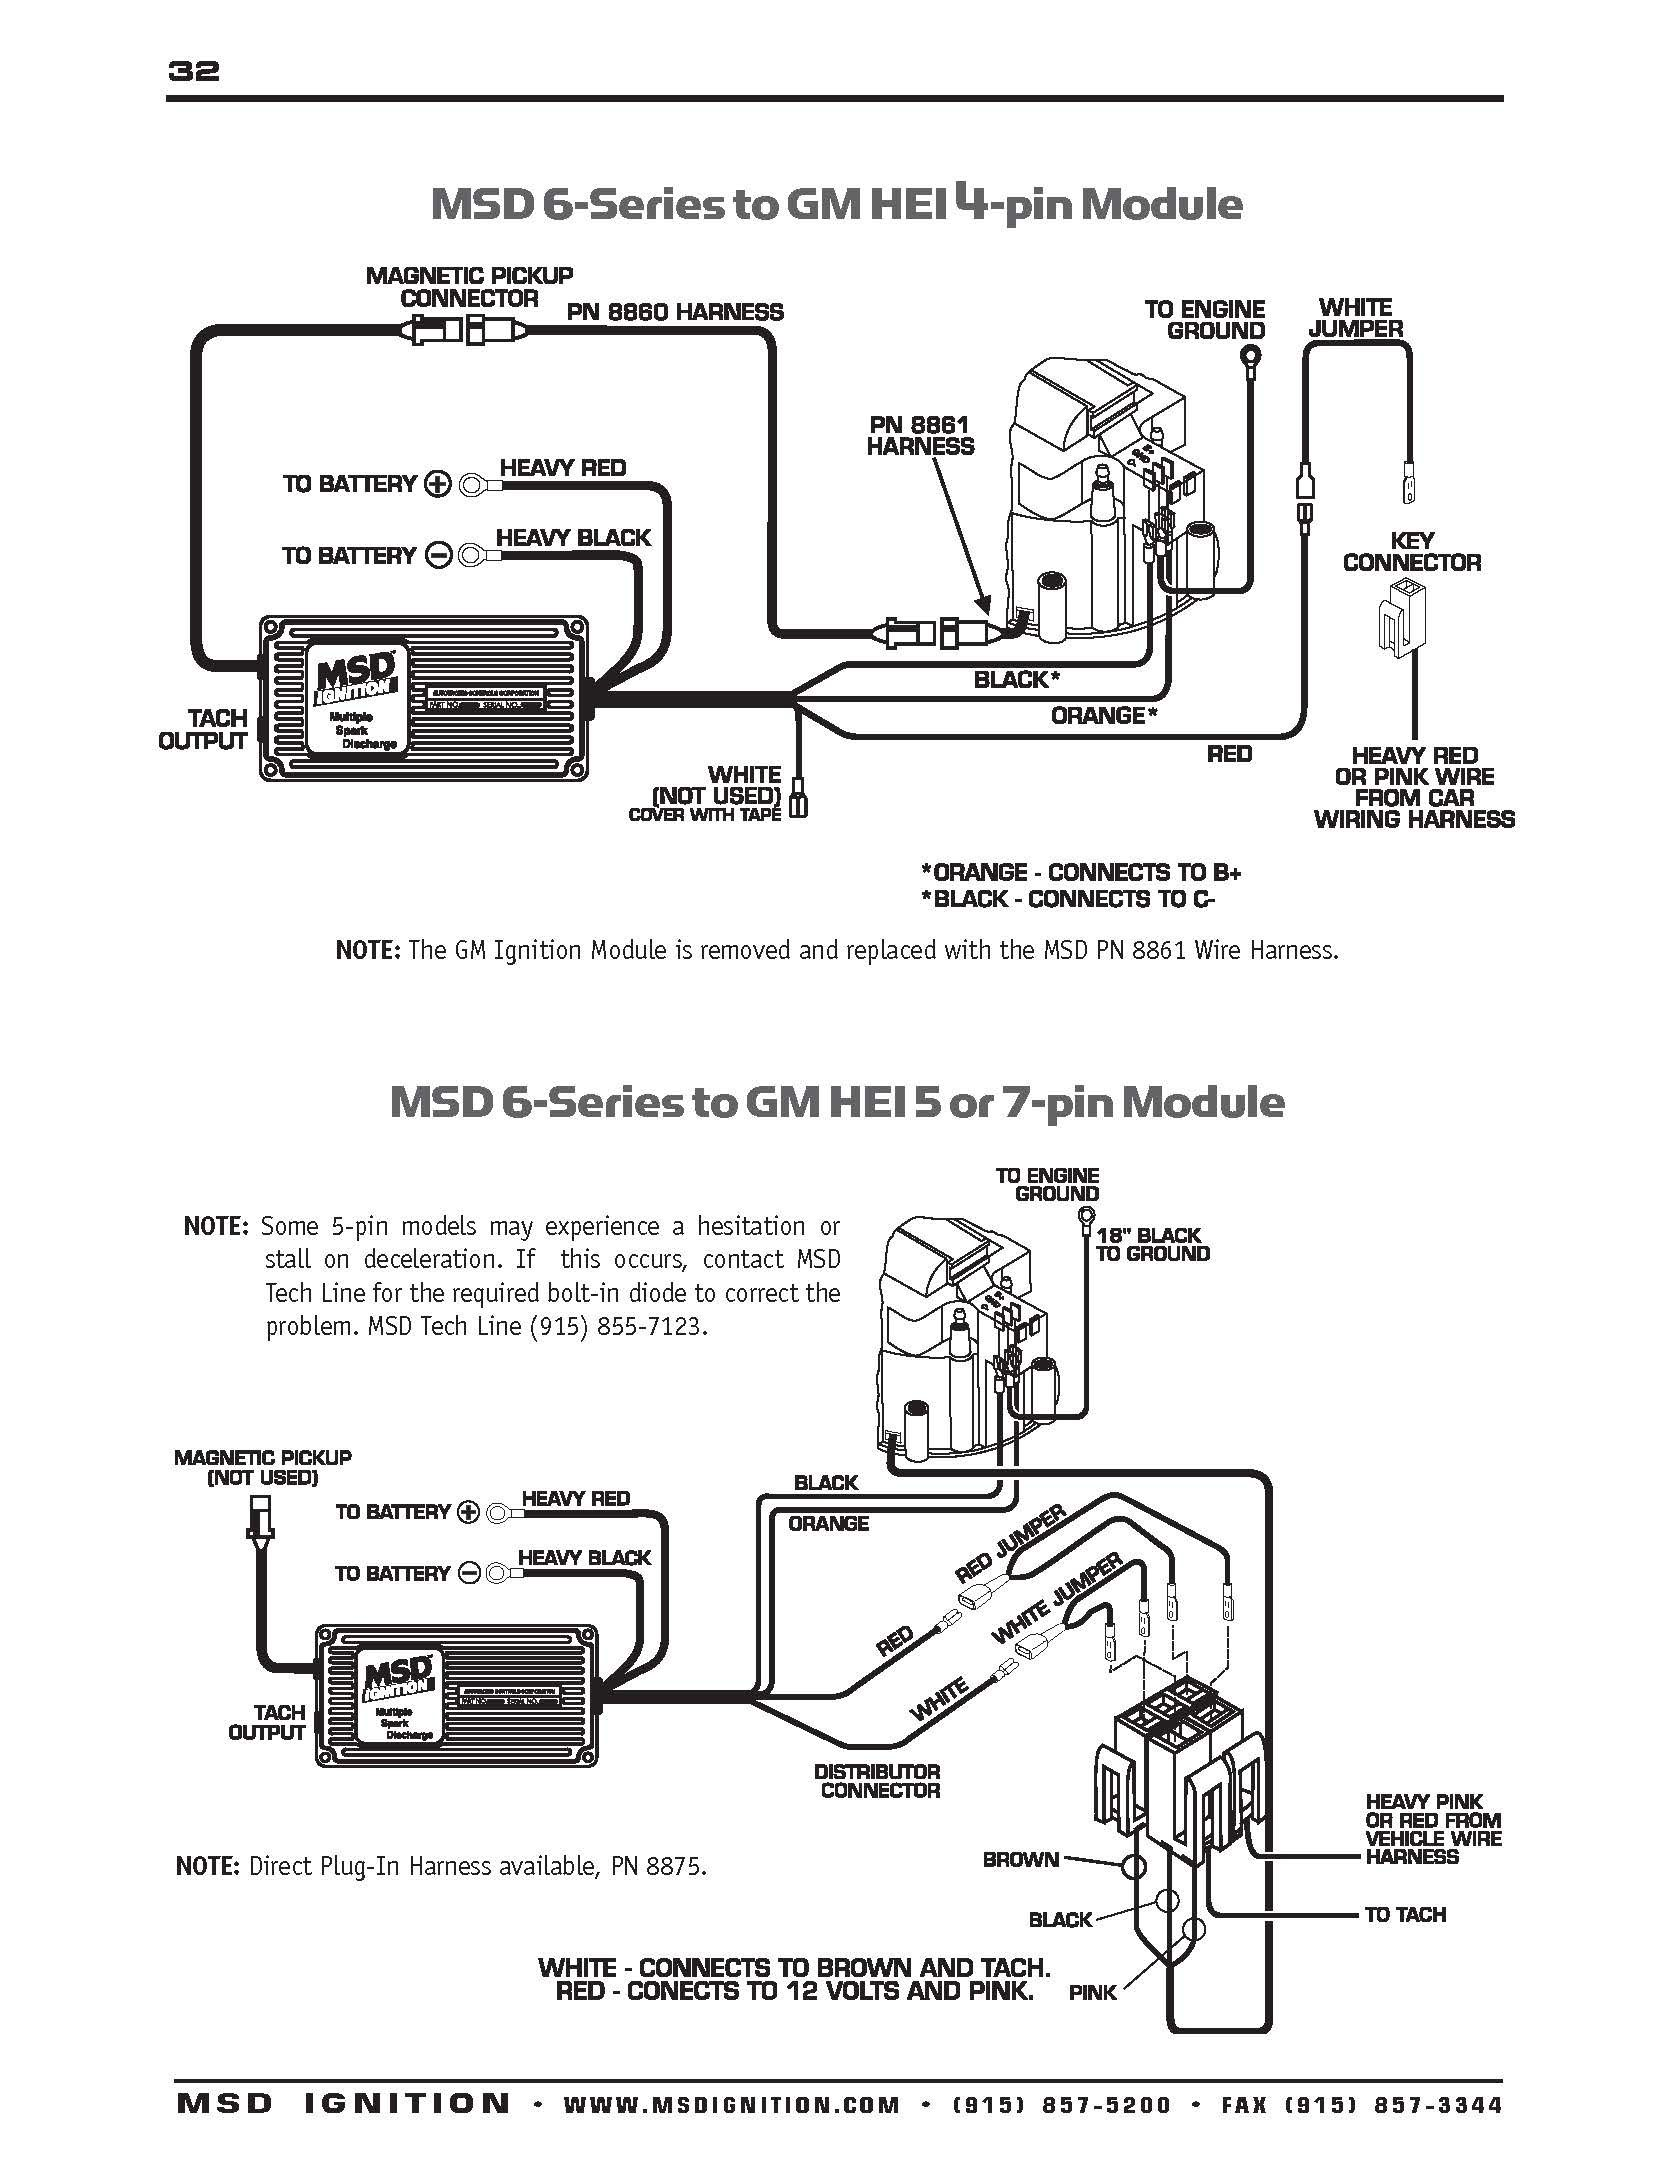 MSD Ignition Wiring Diagrams | 1966 Chevelle | Pinterest ...